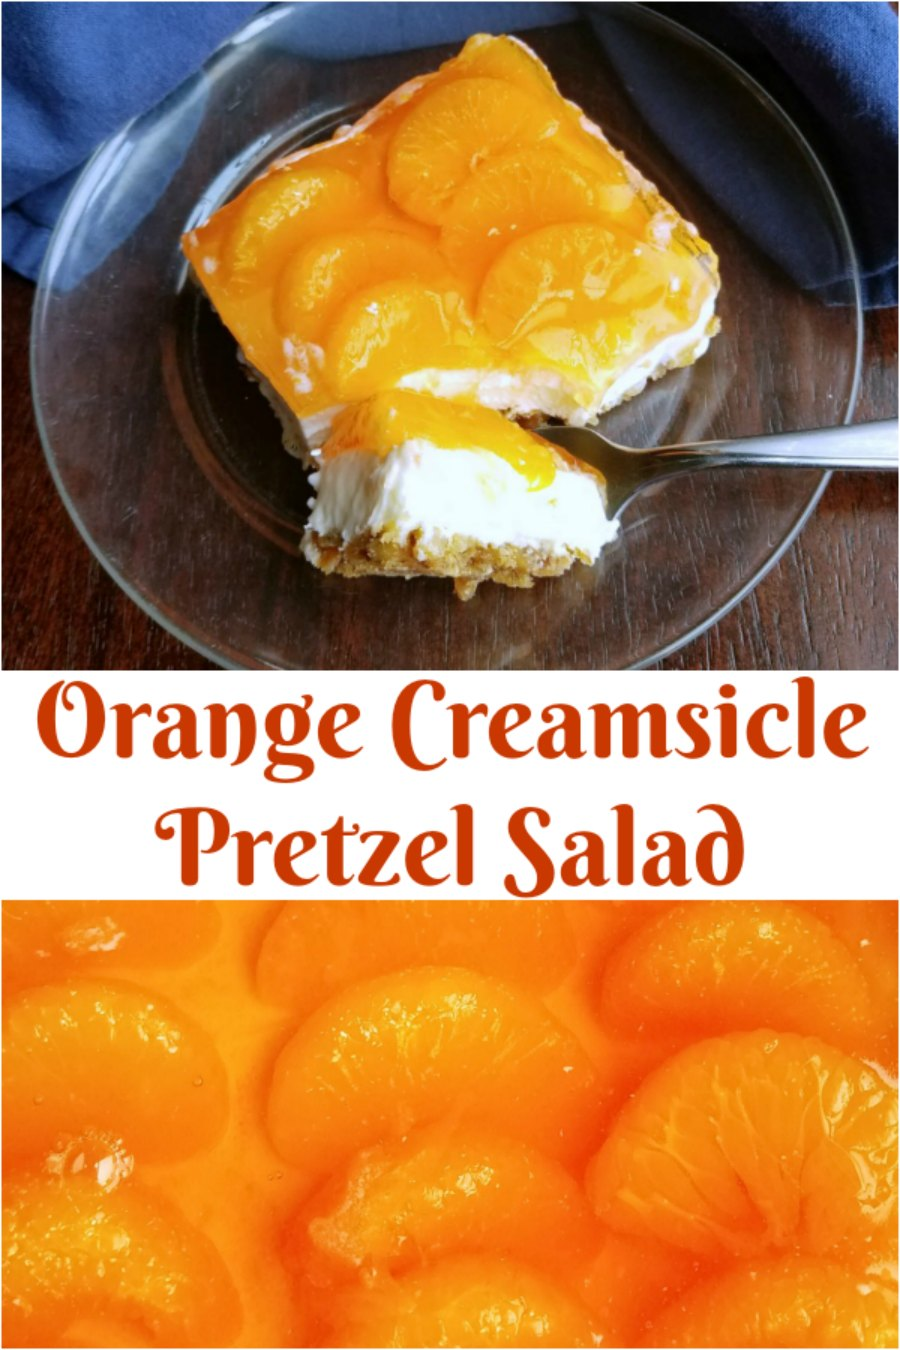 Salty pretzel crust, vanilla cream cheese center and a blast of orange on top, this orange creamsicle pretzel salad has it all. The only question is do you serve it as a side or a dessert?